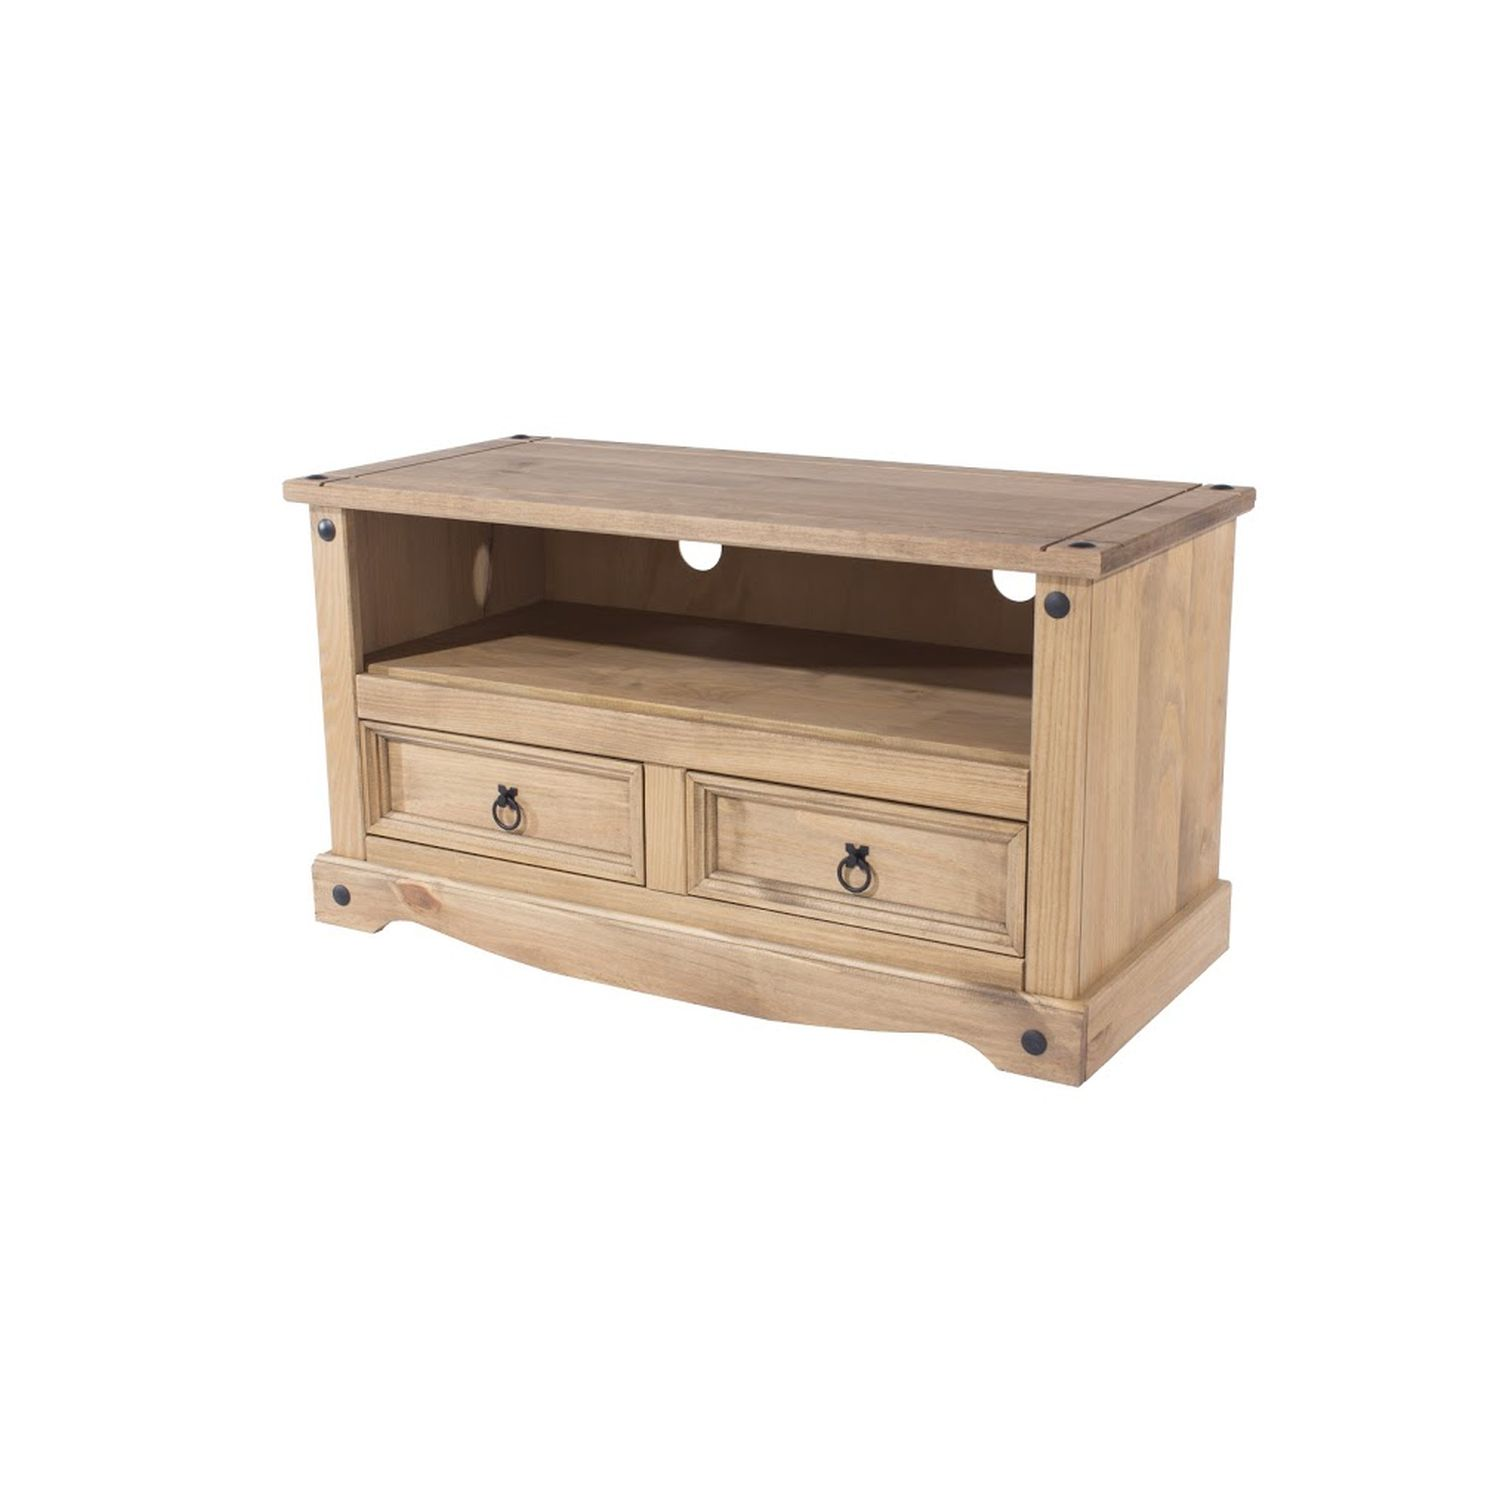 Image of Connor Flat Screen TV Stand